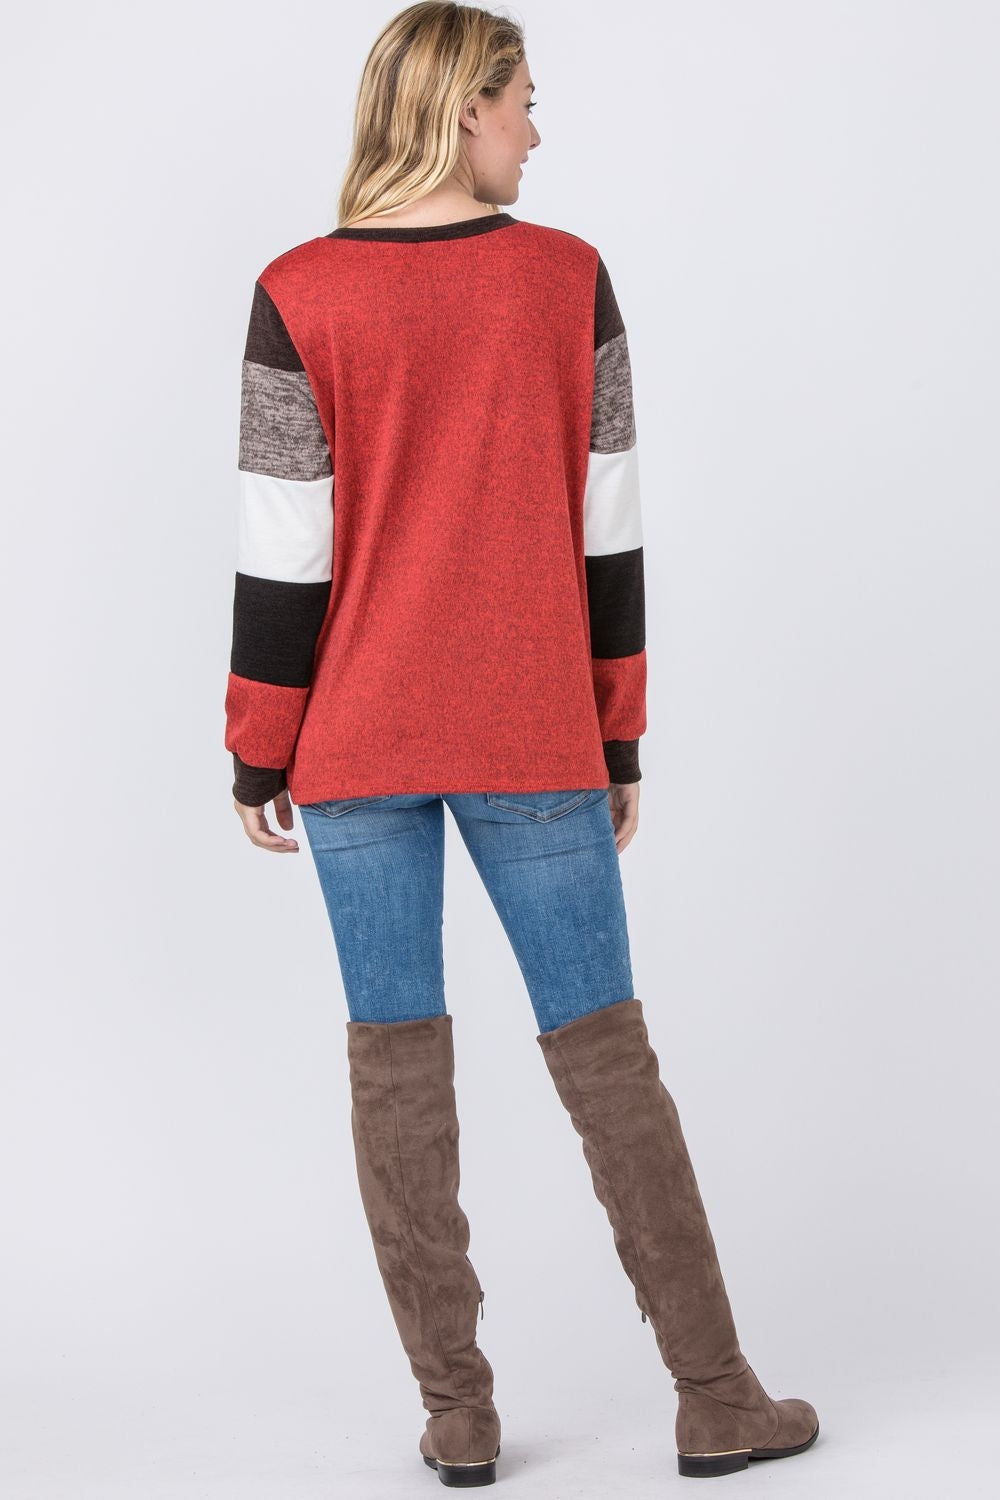 Brown & Orange Knit Color-Block Sweater